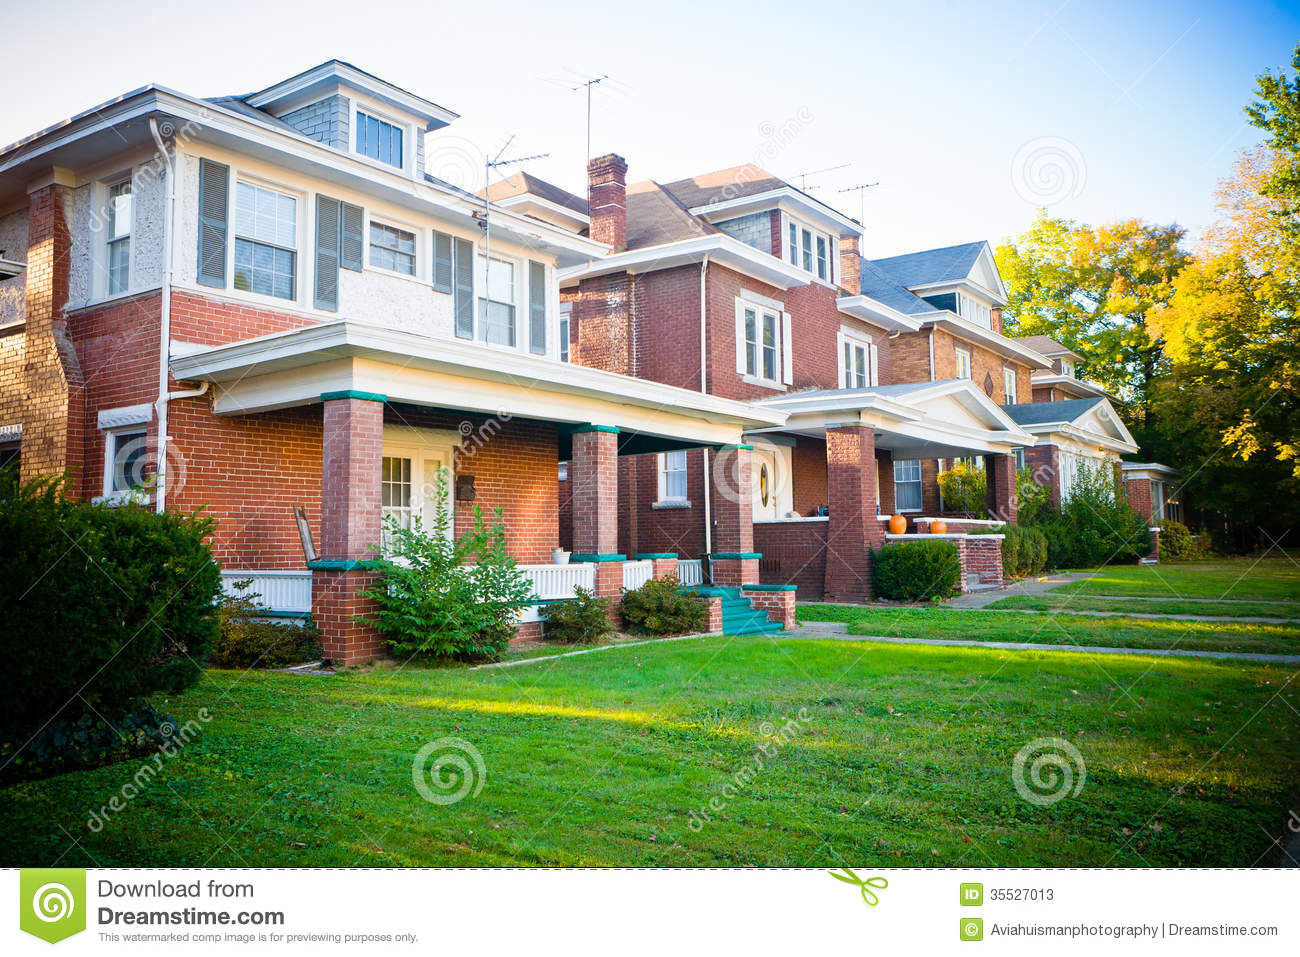 Covered front porch craftsman style home royalty free stock image - Royalty Free Stock Photo Typical Family Homes Stock Photos